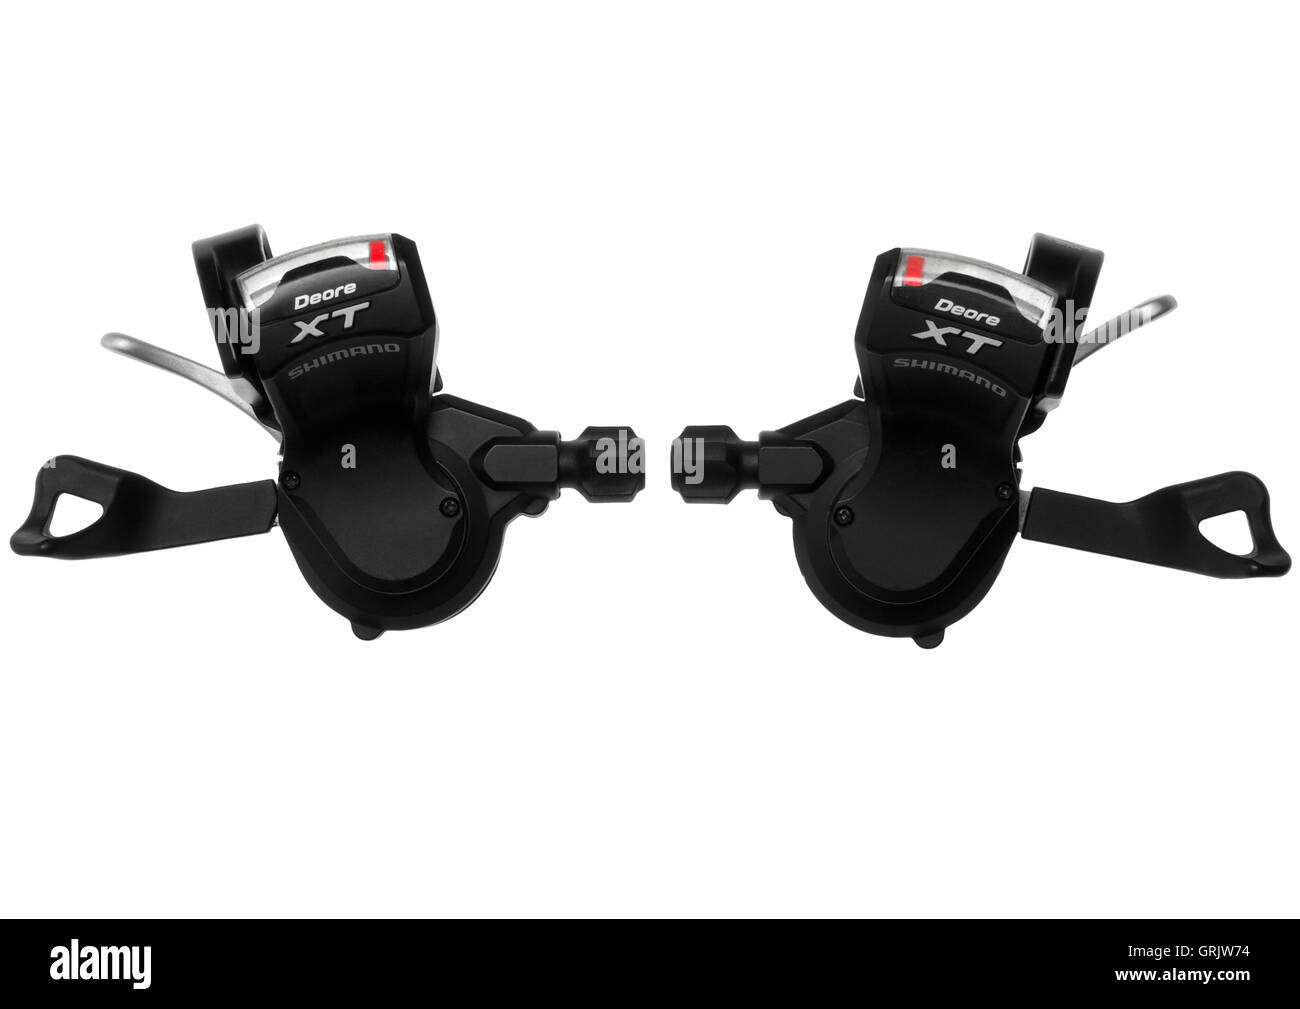 Shimano XT SL-M770 9 speed rapid fire shifter pods on white background - Stock Image